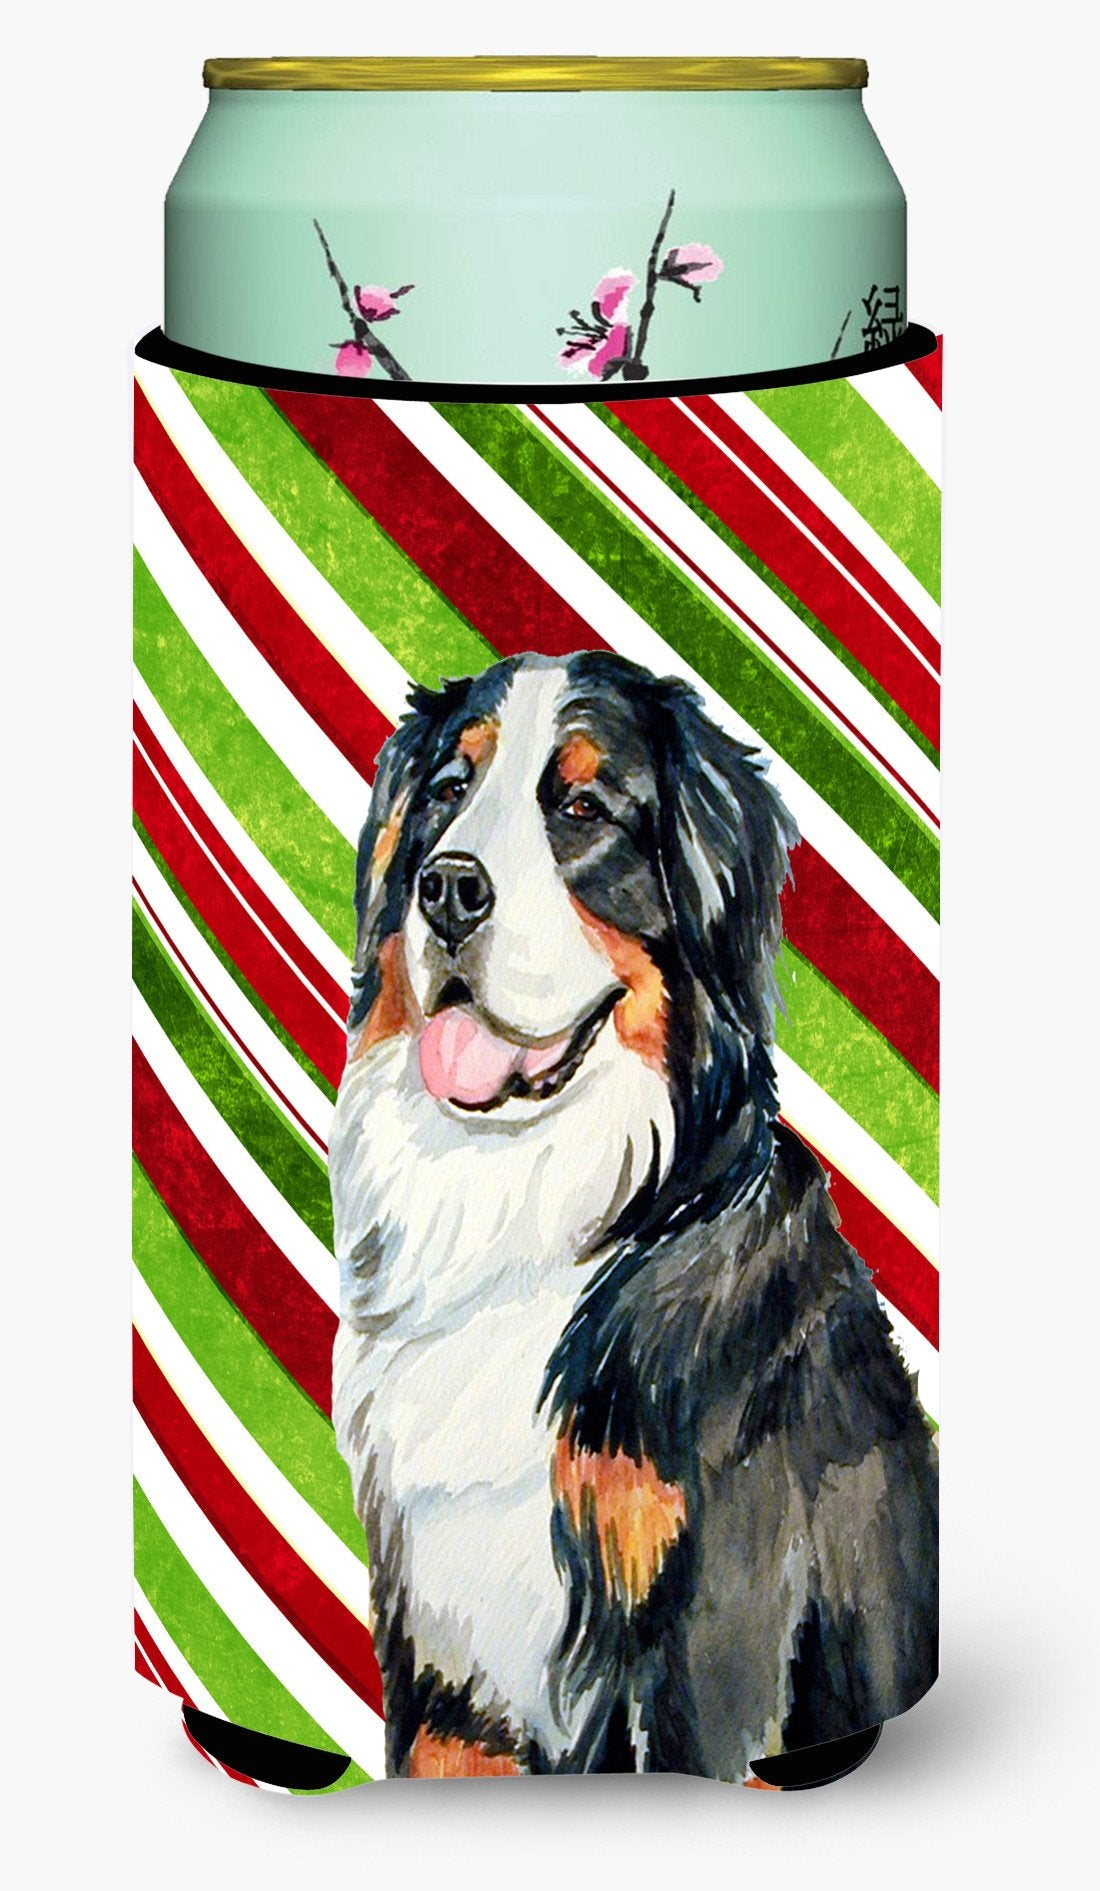 Bernese Mountain Dog Candy Cane Holiday Christmas  Tall Boy Beverage Insulator Beverage Insulator Hugger by Caroline's Treasures